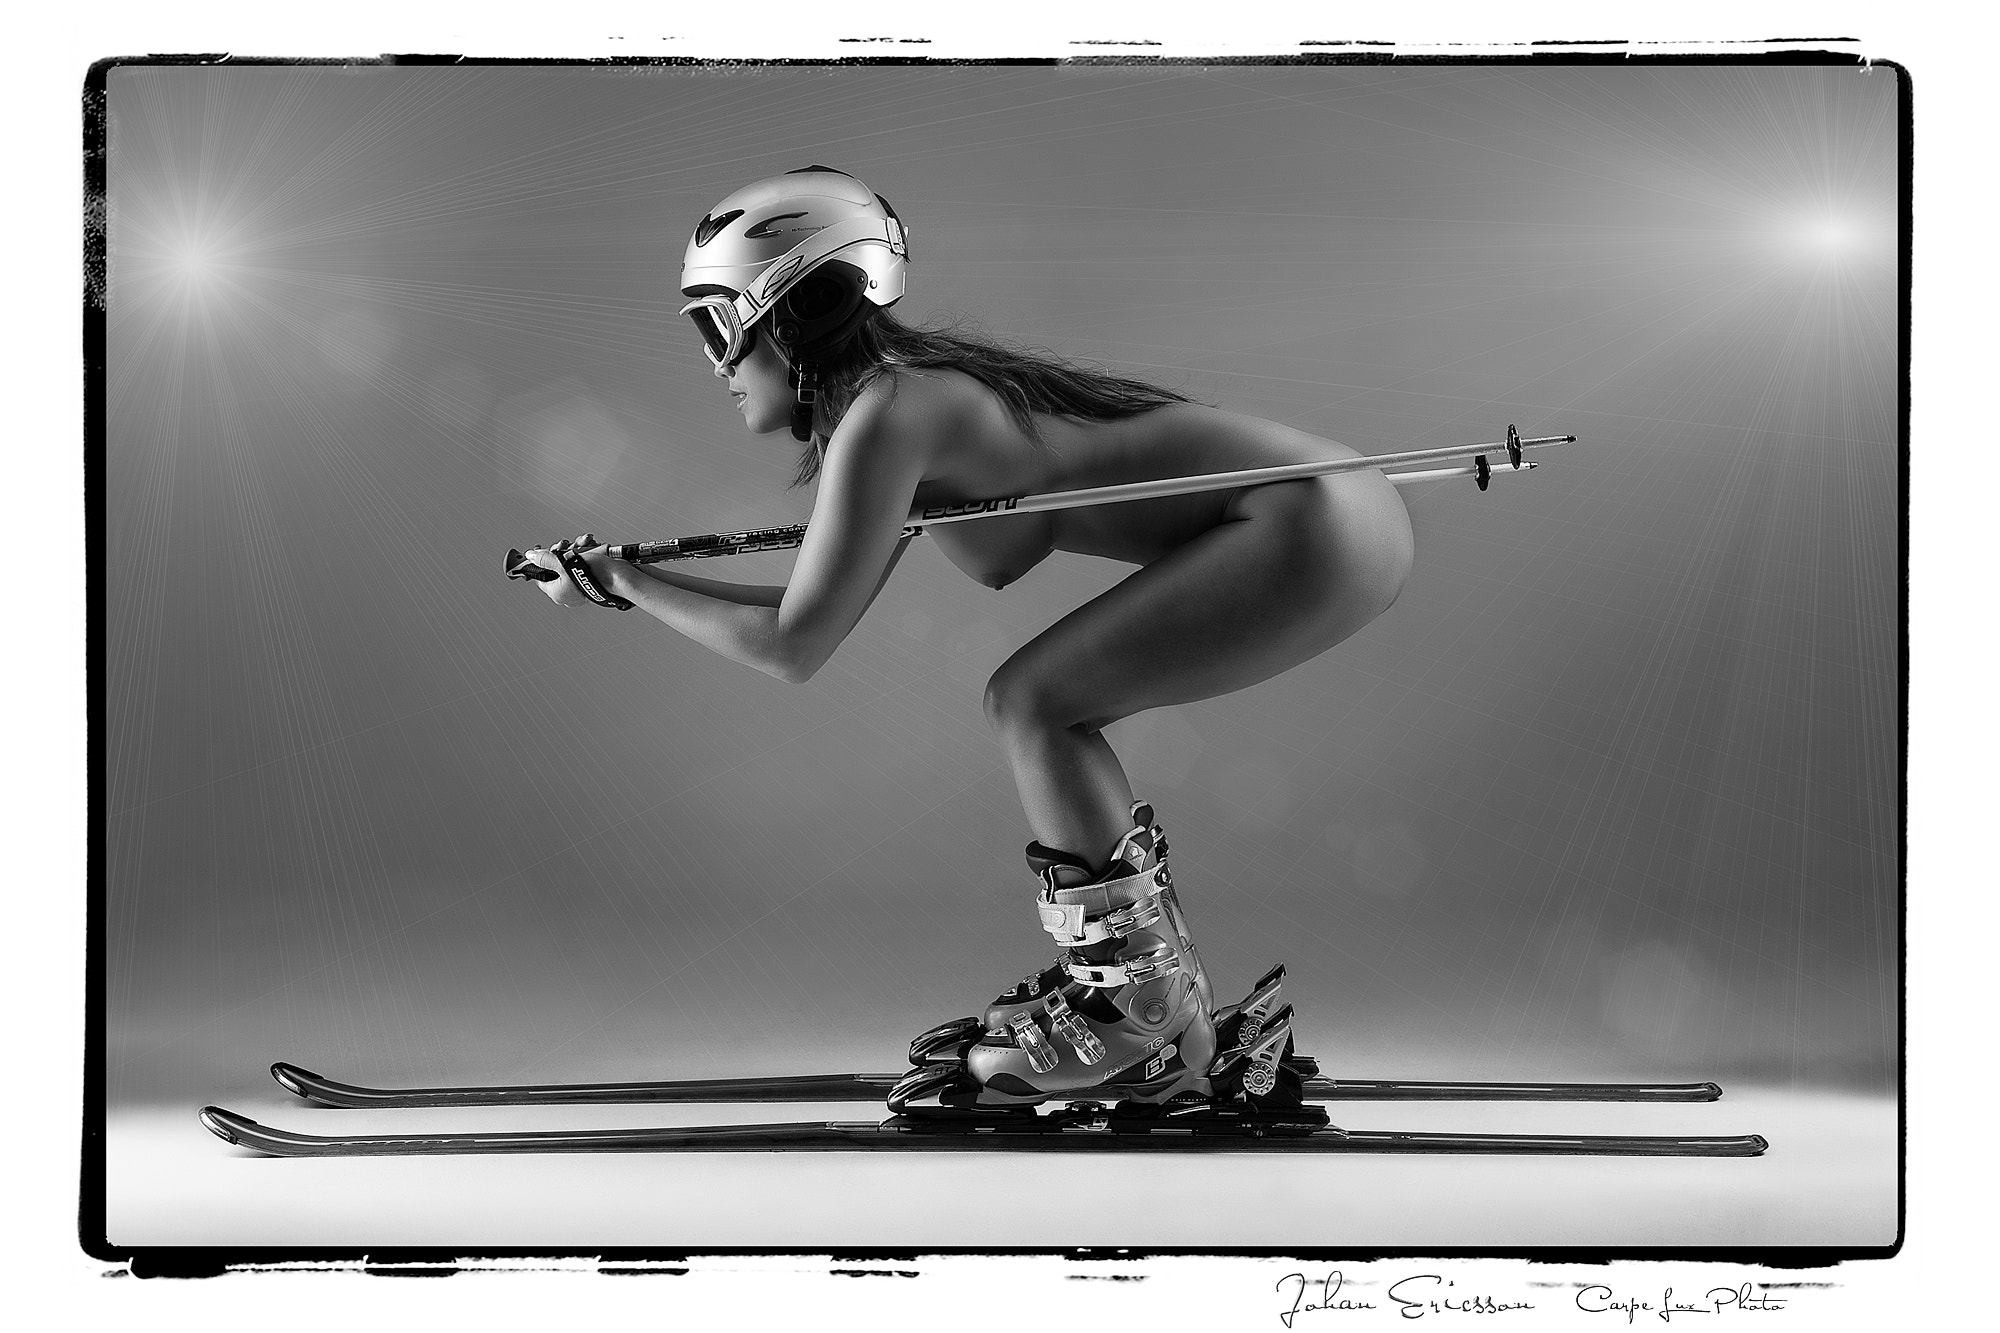 Photograph Skiing by jo er on 500px